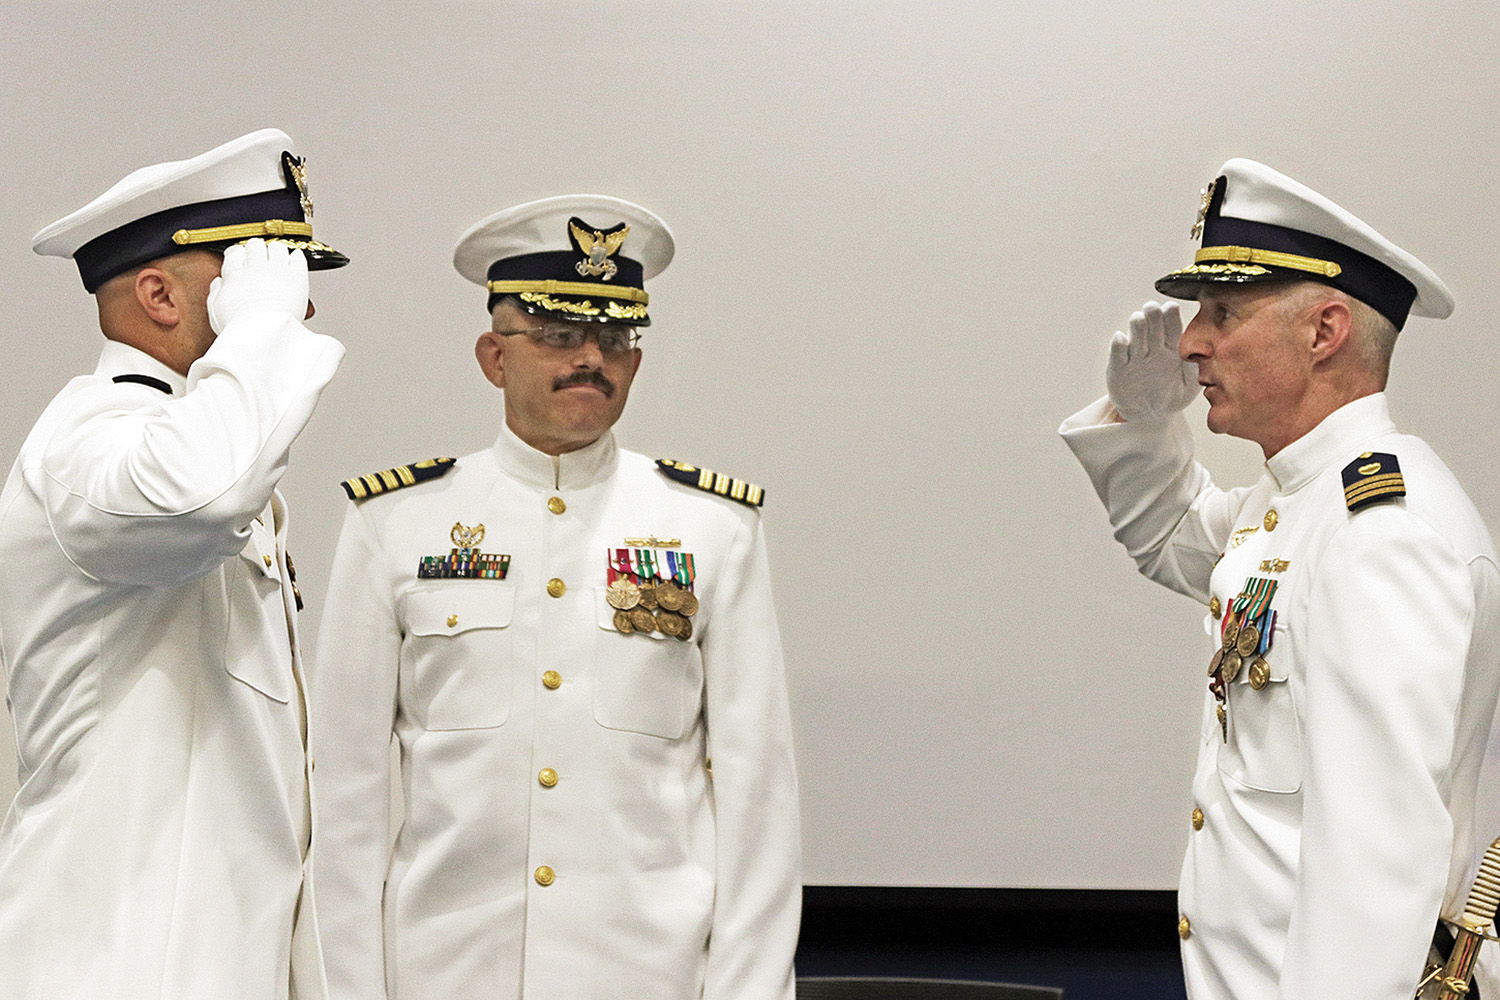 Incoming Cmdr. Luis Carmona salutes outgoing Cmdr. Mark Sawyer as Capt. Michael Zamperini looks on during July 13 change-of-command ceremony. (photo by Jeff L. Yates)